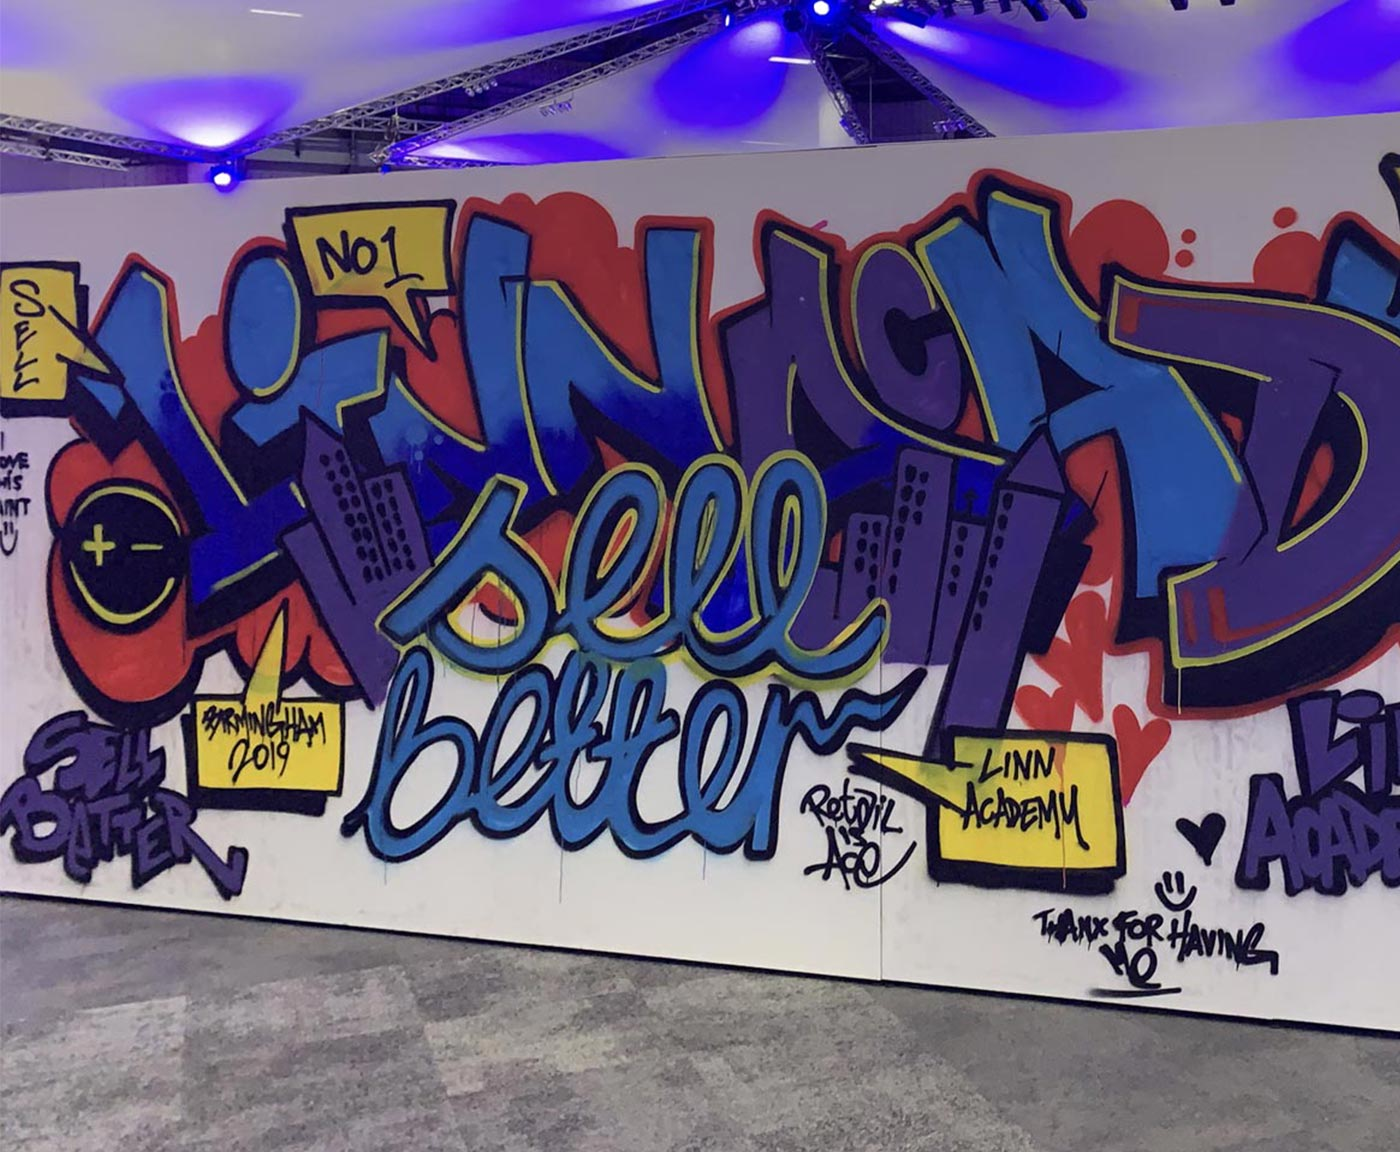 A graffiti wall from the LinnAcademy event